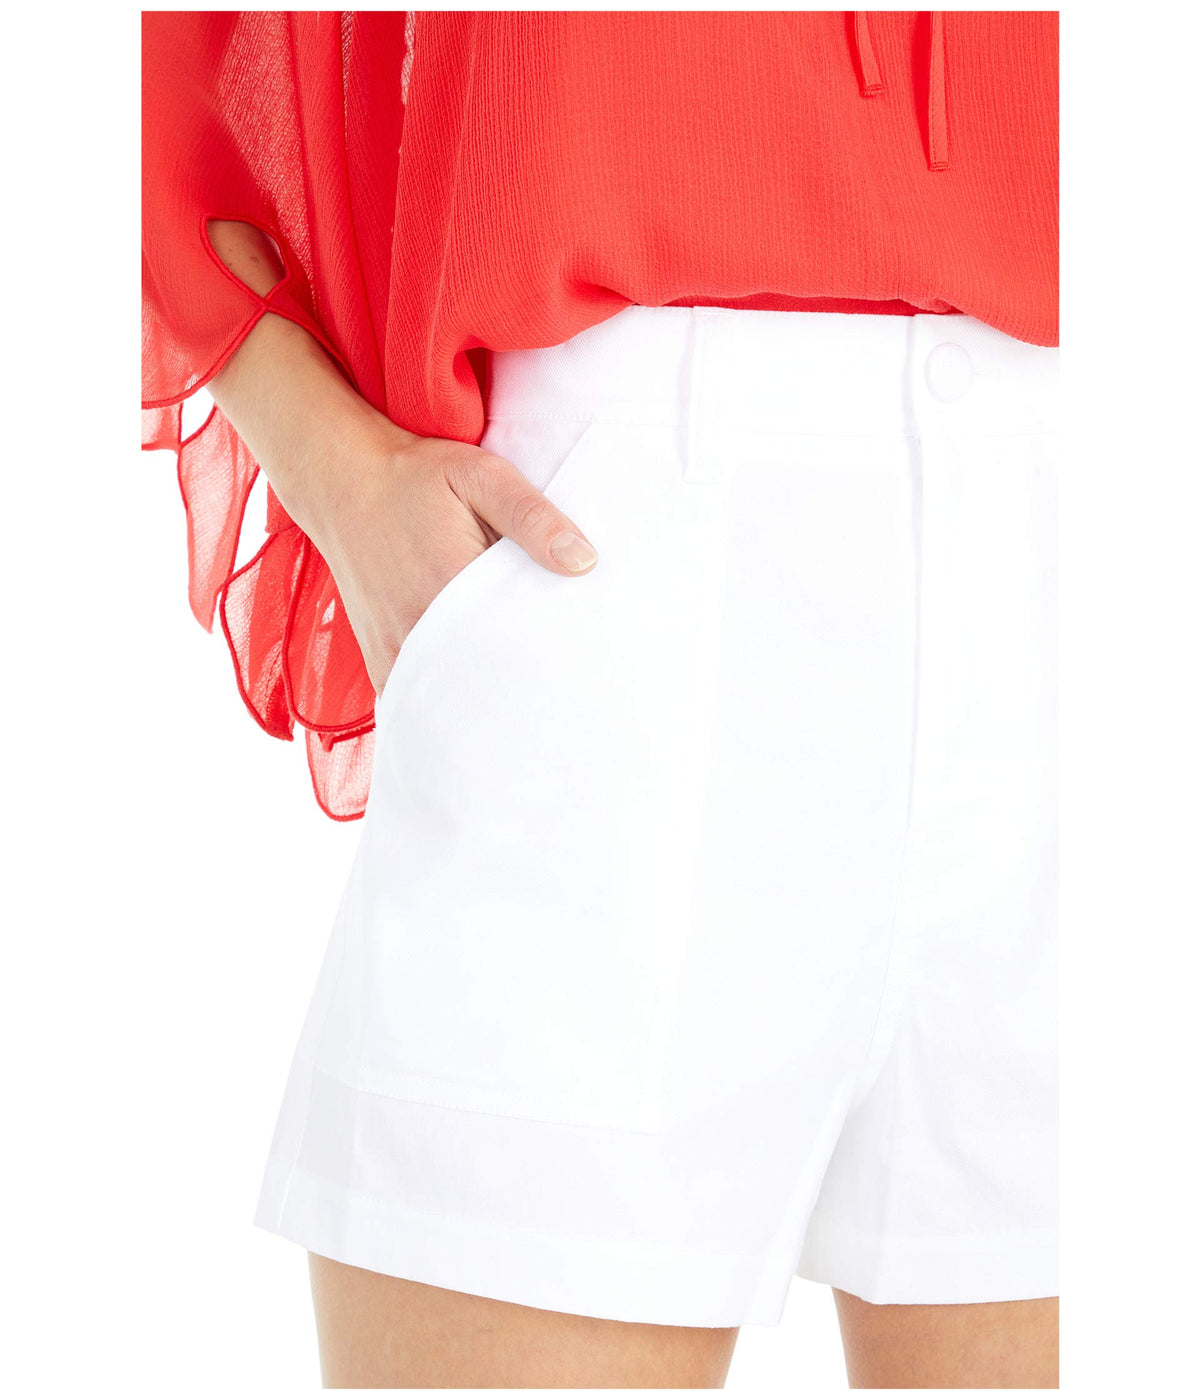 Patch Pocket Shorts in Optic White